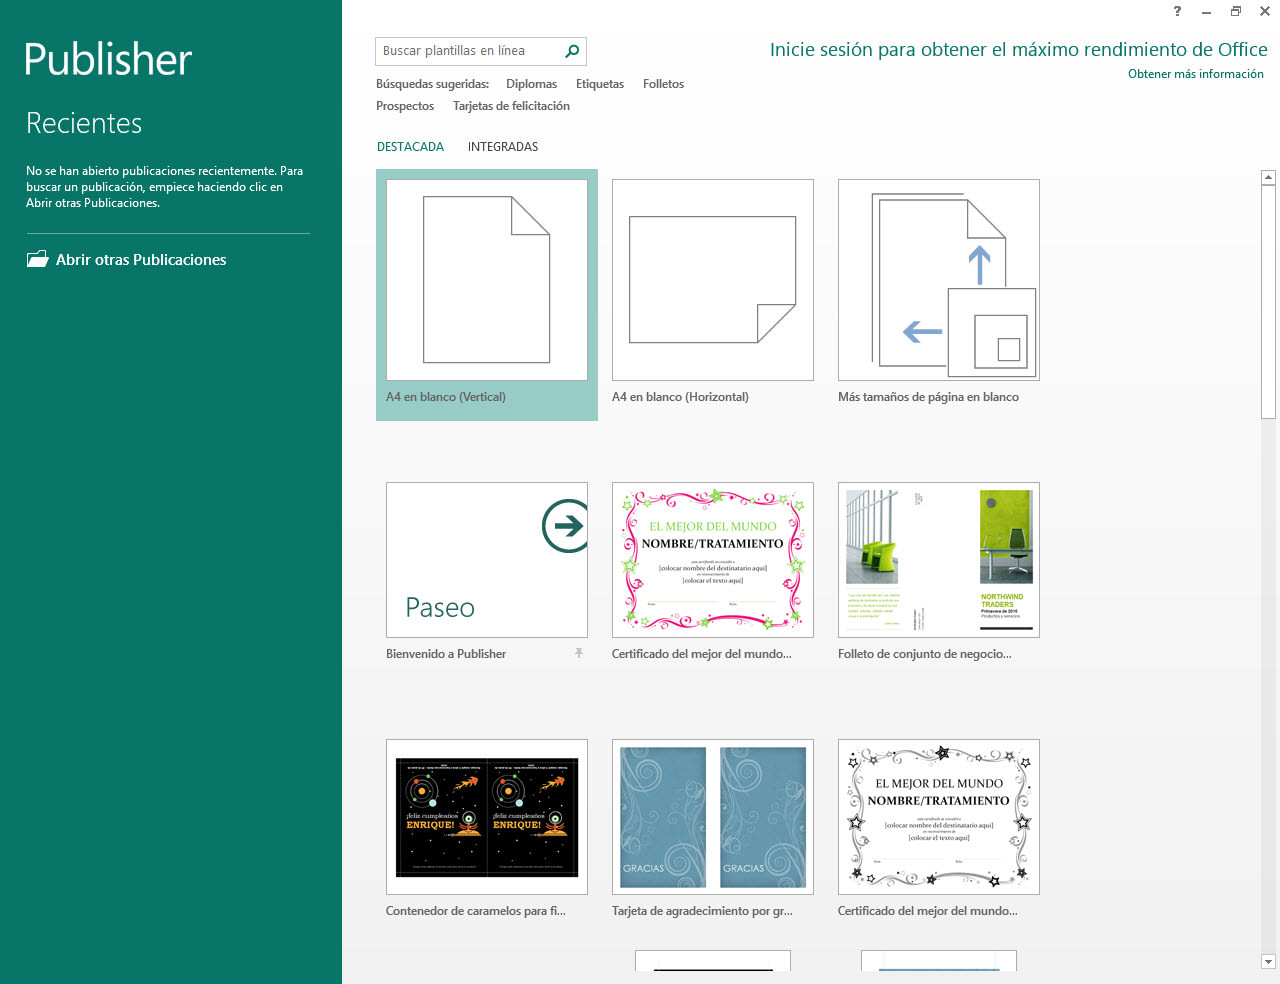 como descargar microsoft publisher 2013 gratis